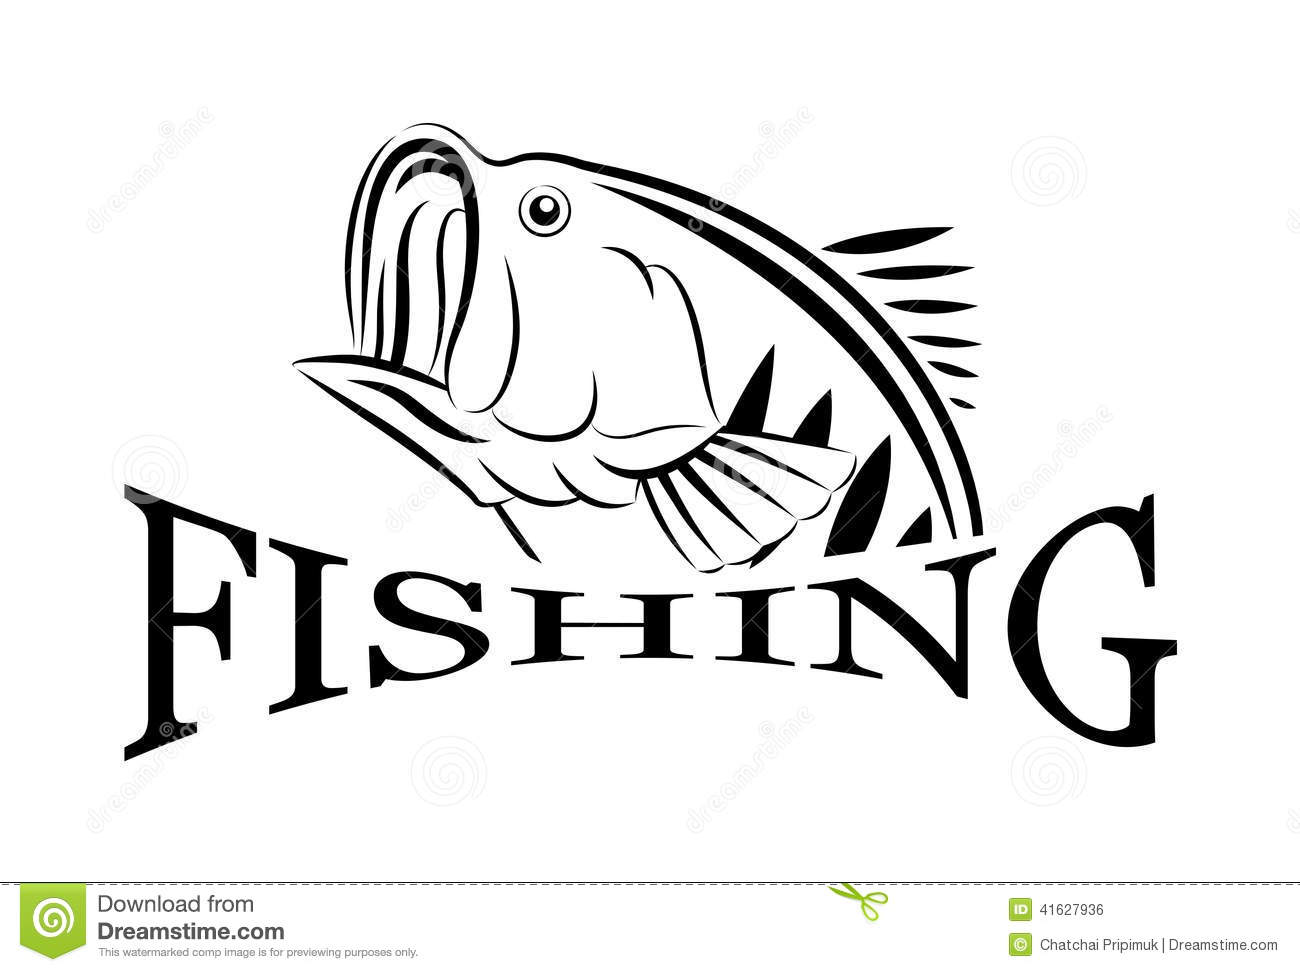 Fishing designs images galleries with for Fishing times free